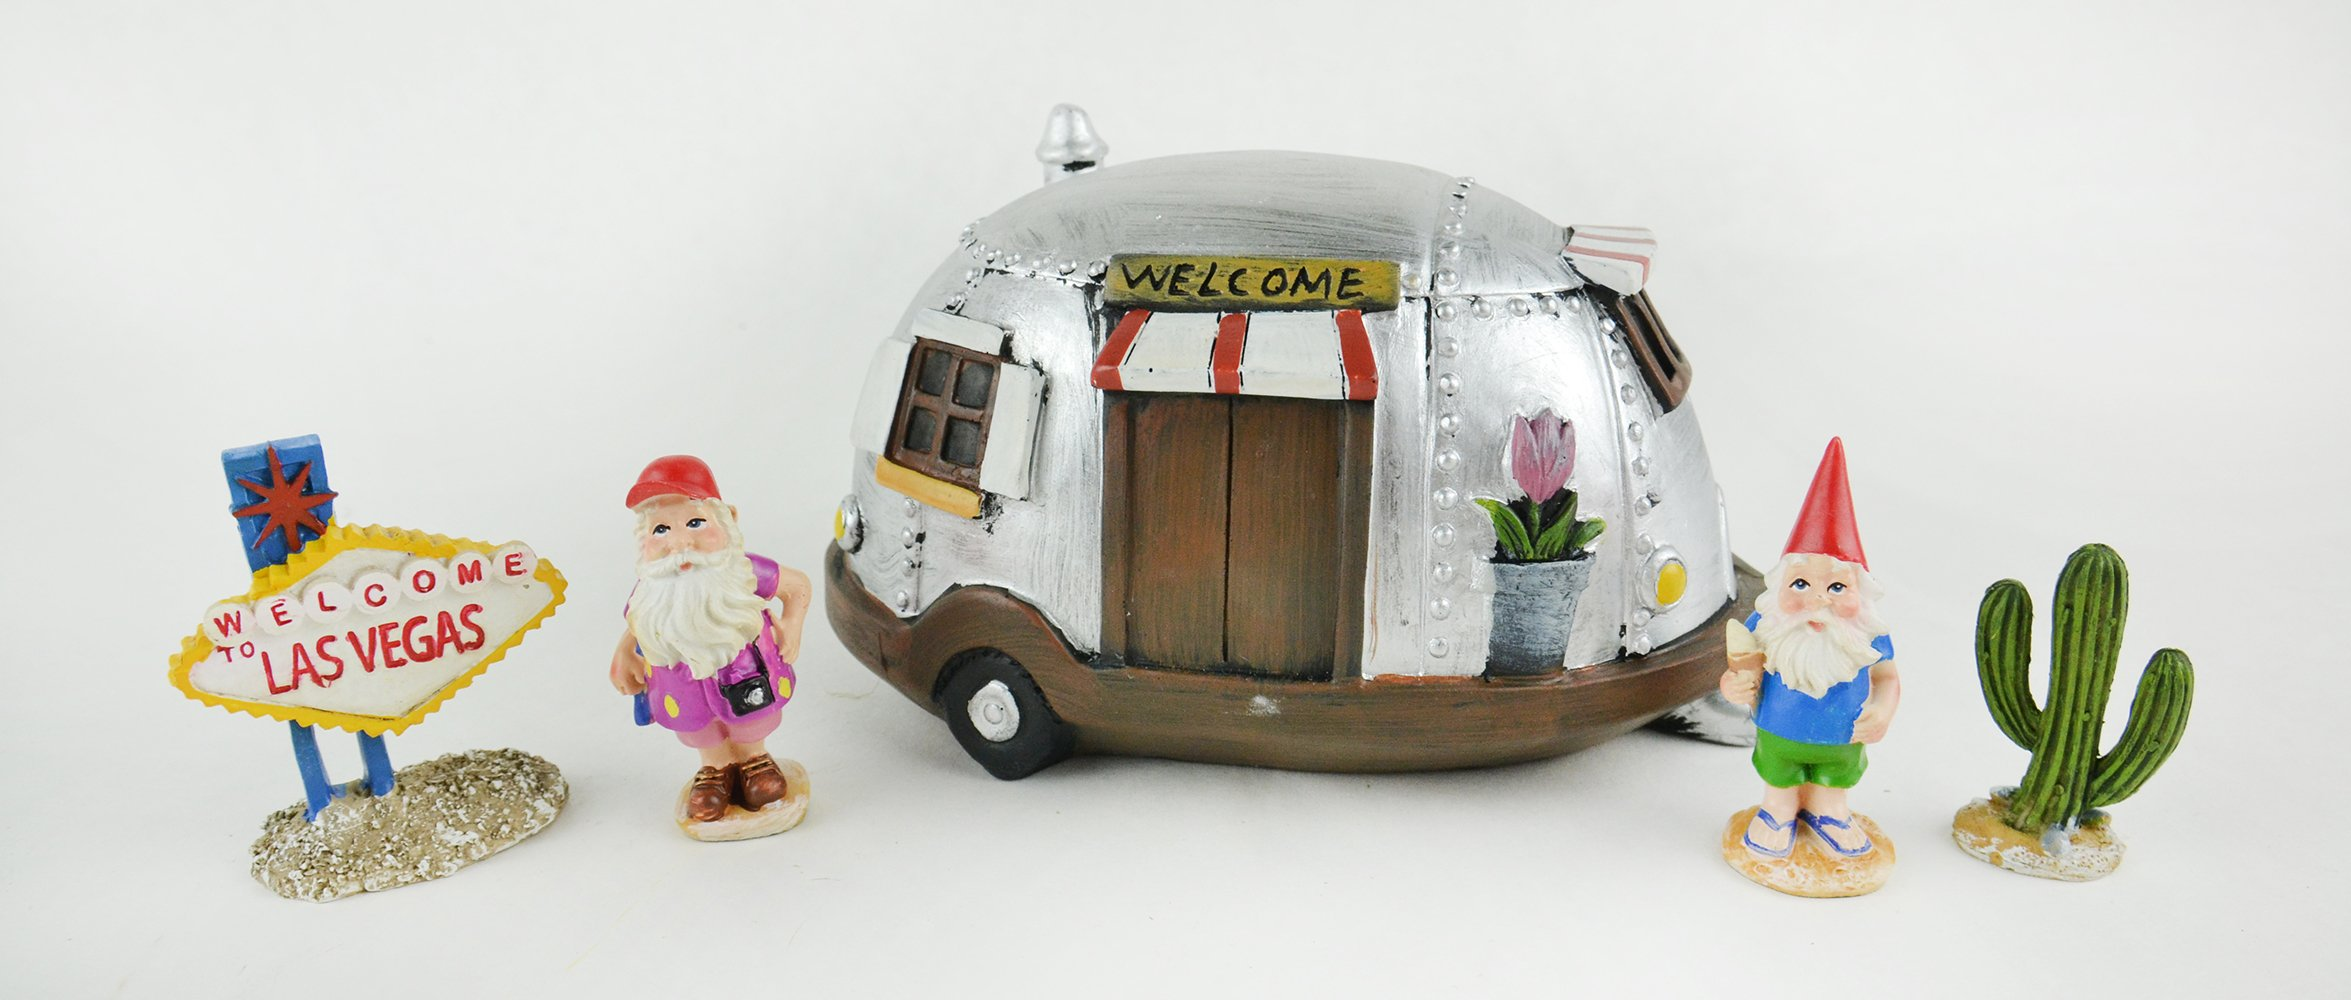 Fairy Garden Sets in Resin with Fine Detailing (Welcome to Las Vegas Sign Camper and Gnomes) by Clever Home (Image #2)